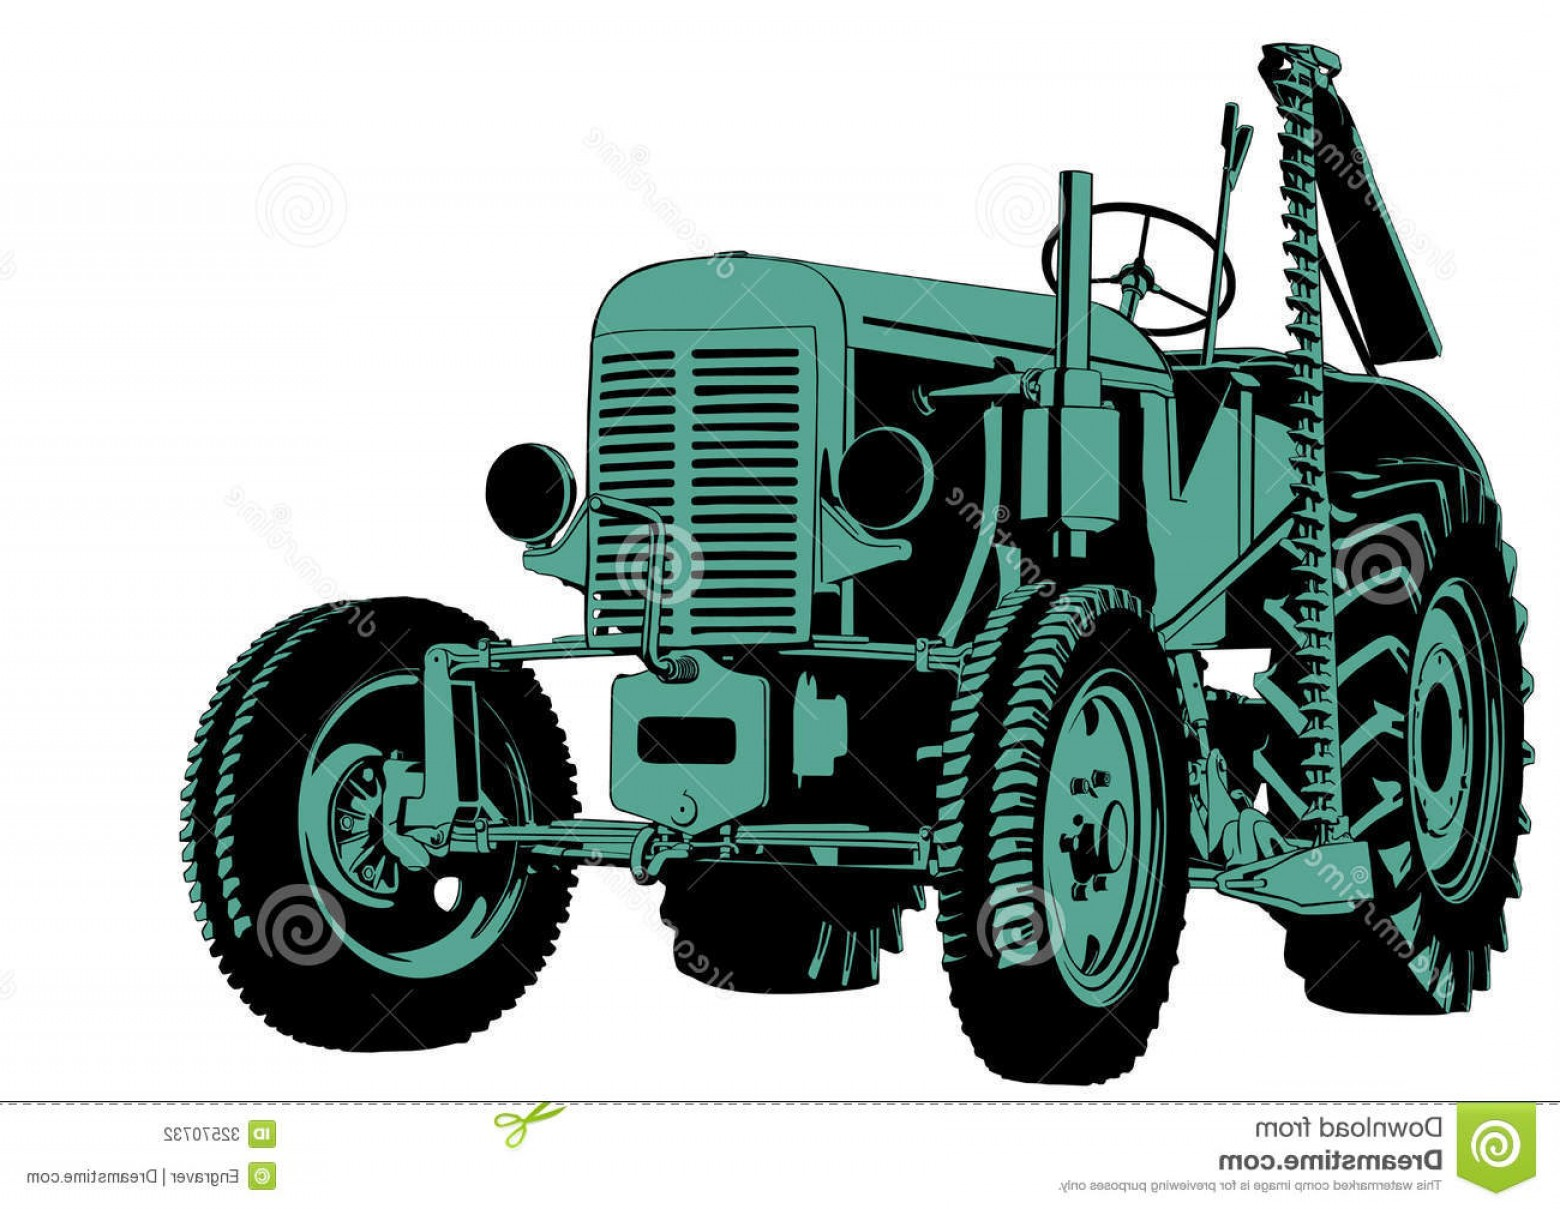 Vintage Tractor Vector Art: Stock Illustration Old Tractor Hand Drawing Red Classic Not Real Type Image